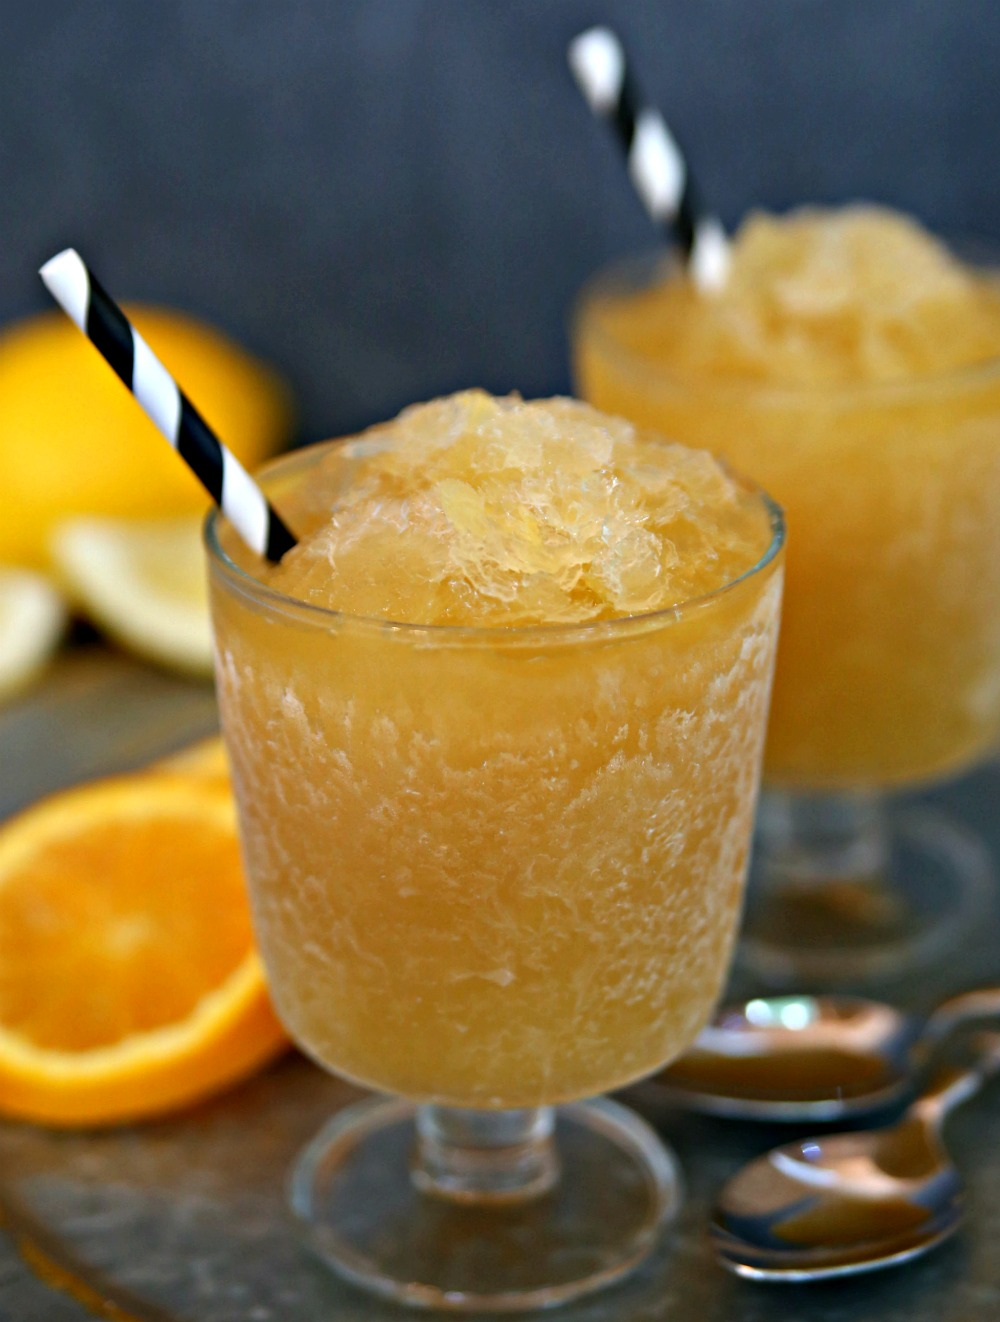 This bourbon slush recipe is the perfect summer cocktail! Stay cool this summer with bourbon slush!